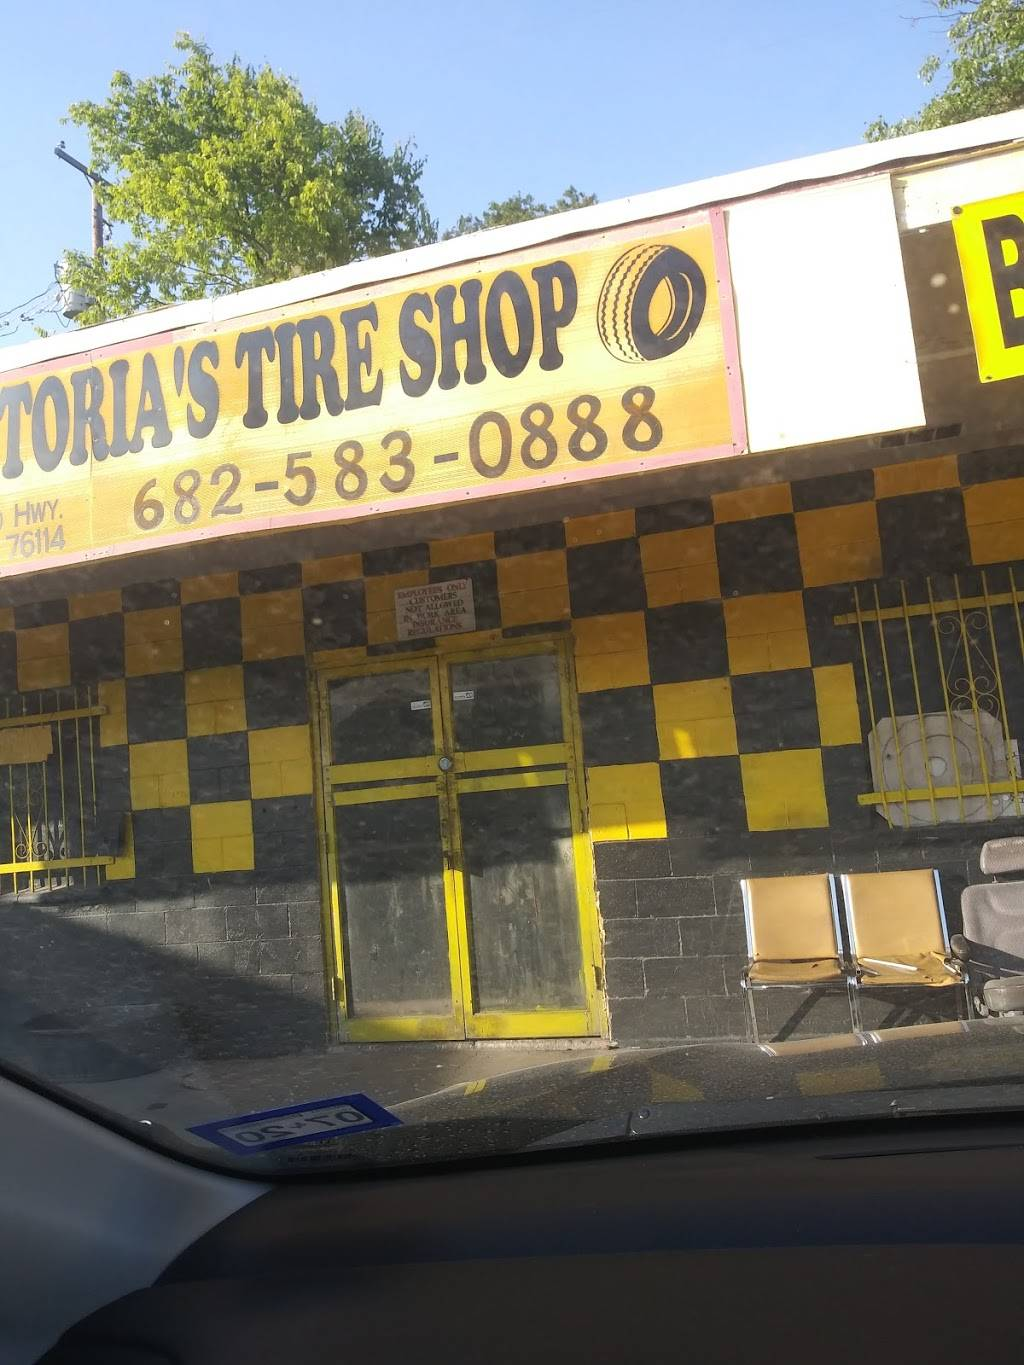 Victoria's Tire Shop - car repair  | Photo 1 of 8 | Address: 2800 Jacksboro Hwy, Fort Worth, TX 76114, USA | Phone: (682) 583-0888